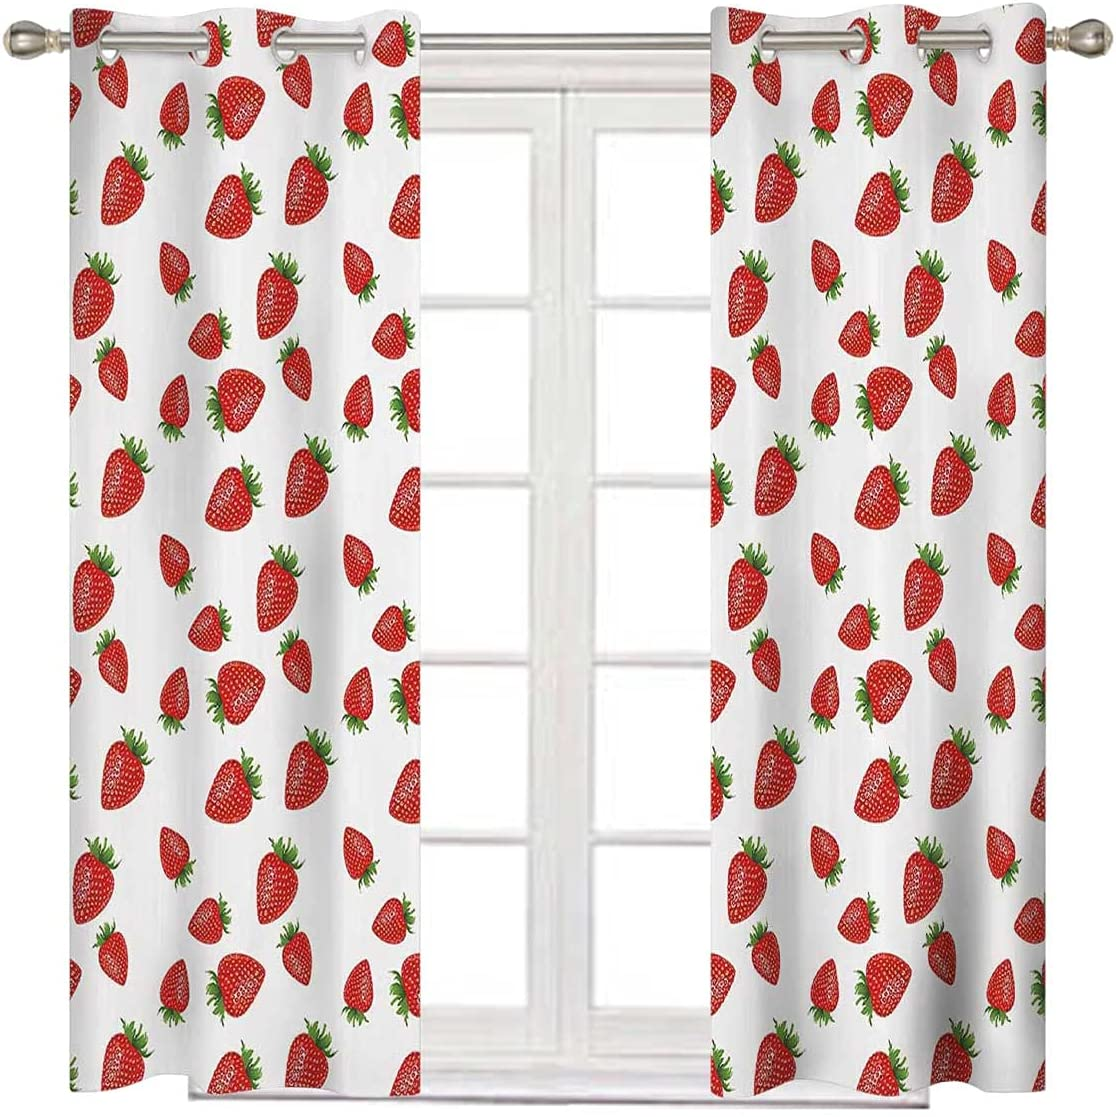 Kitchen Grommet Curtain San Francisco Mall Panel 84 Inches and Long Therm Fort Worth Mall White Red